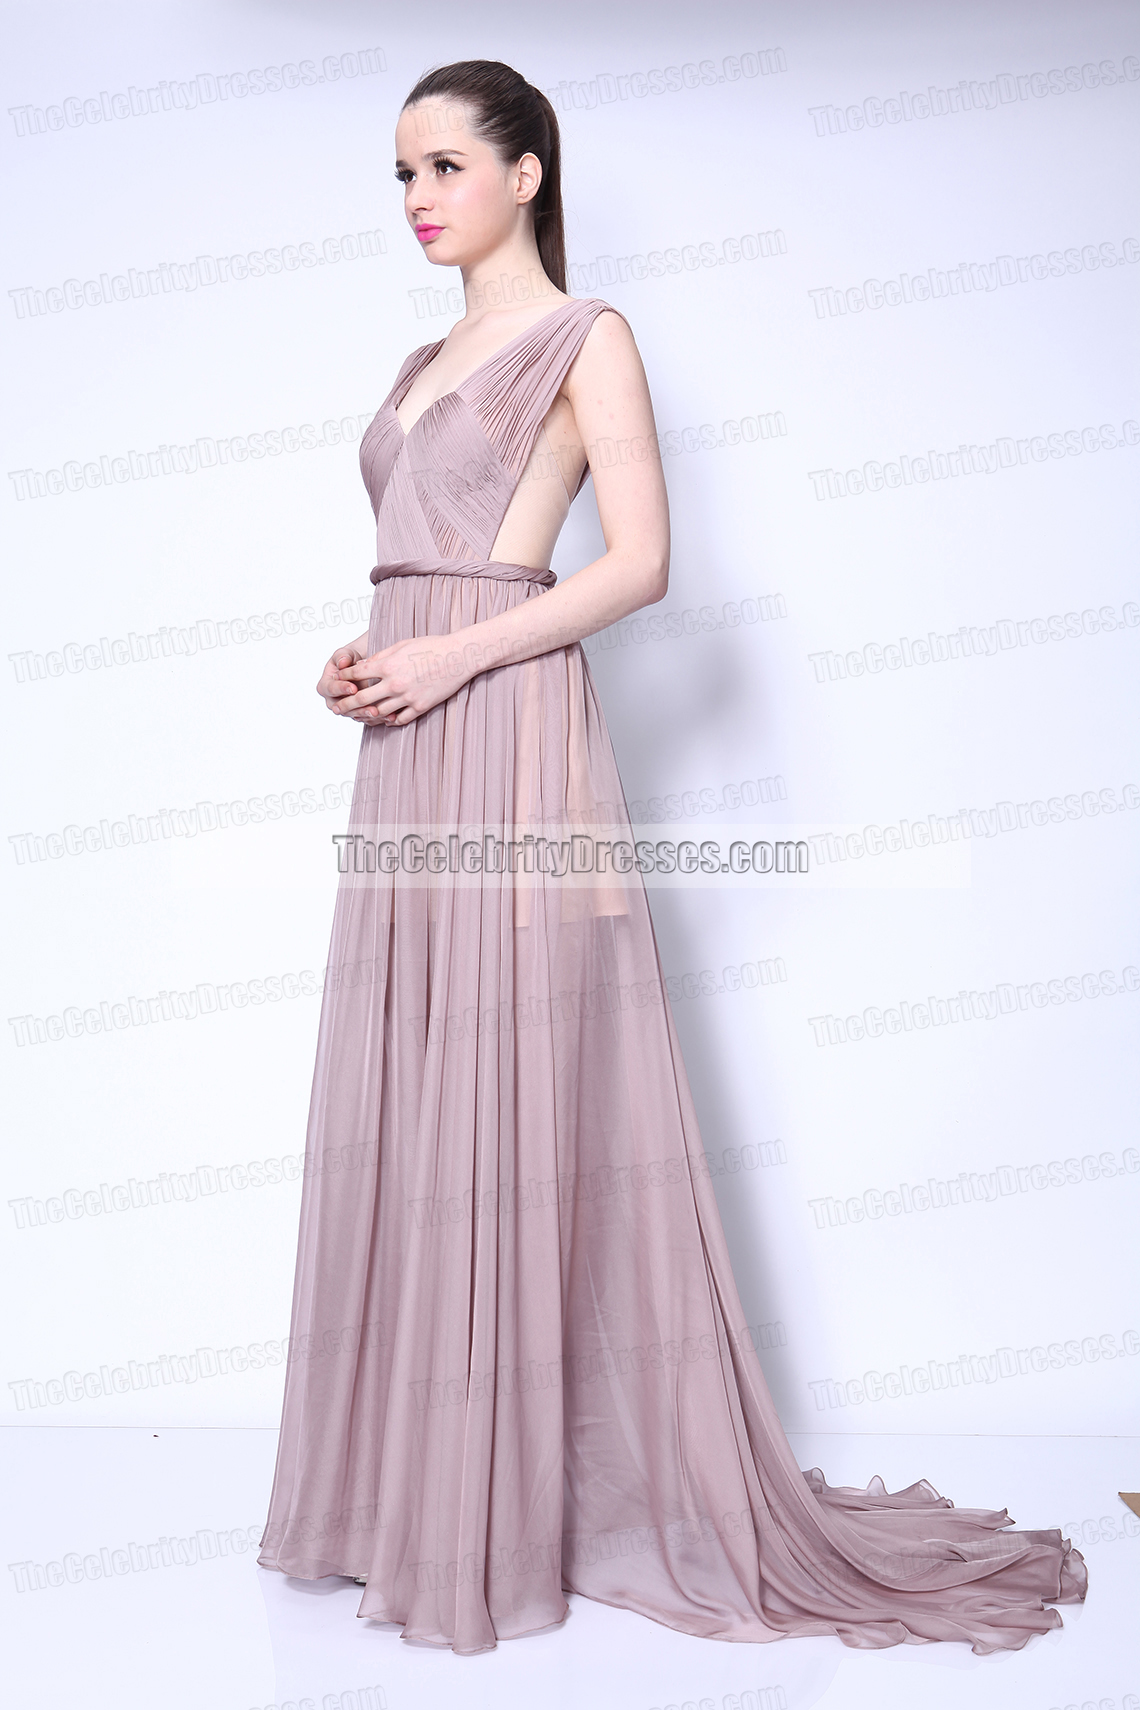 d890e0736e Taylor Swift Chiffon Prom Dress in Video Begin Again gorgeous Gown -  TheCelebrityDresses